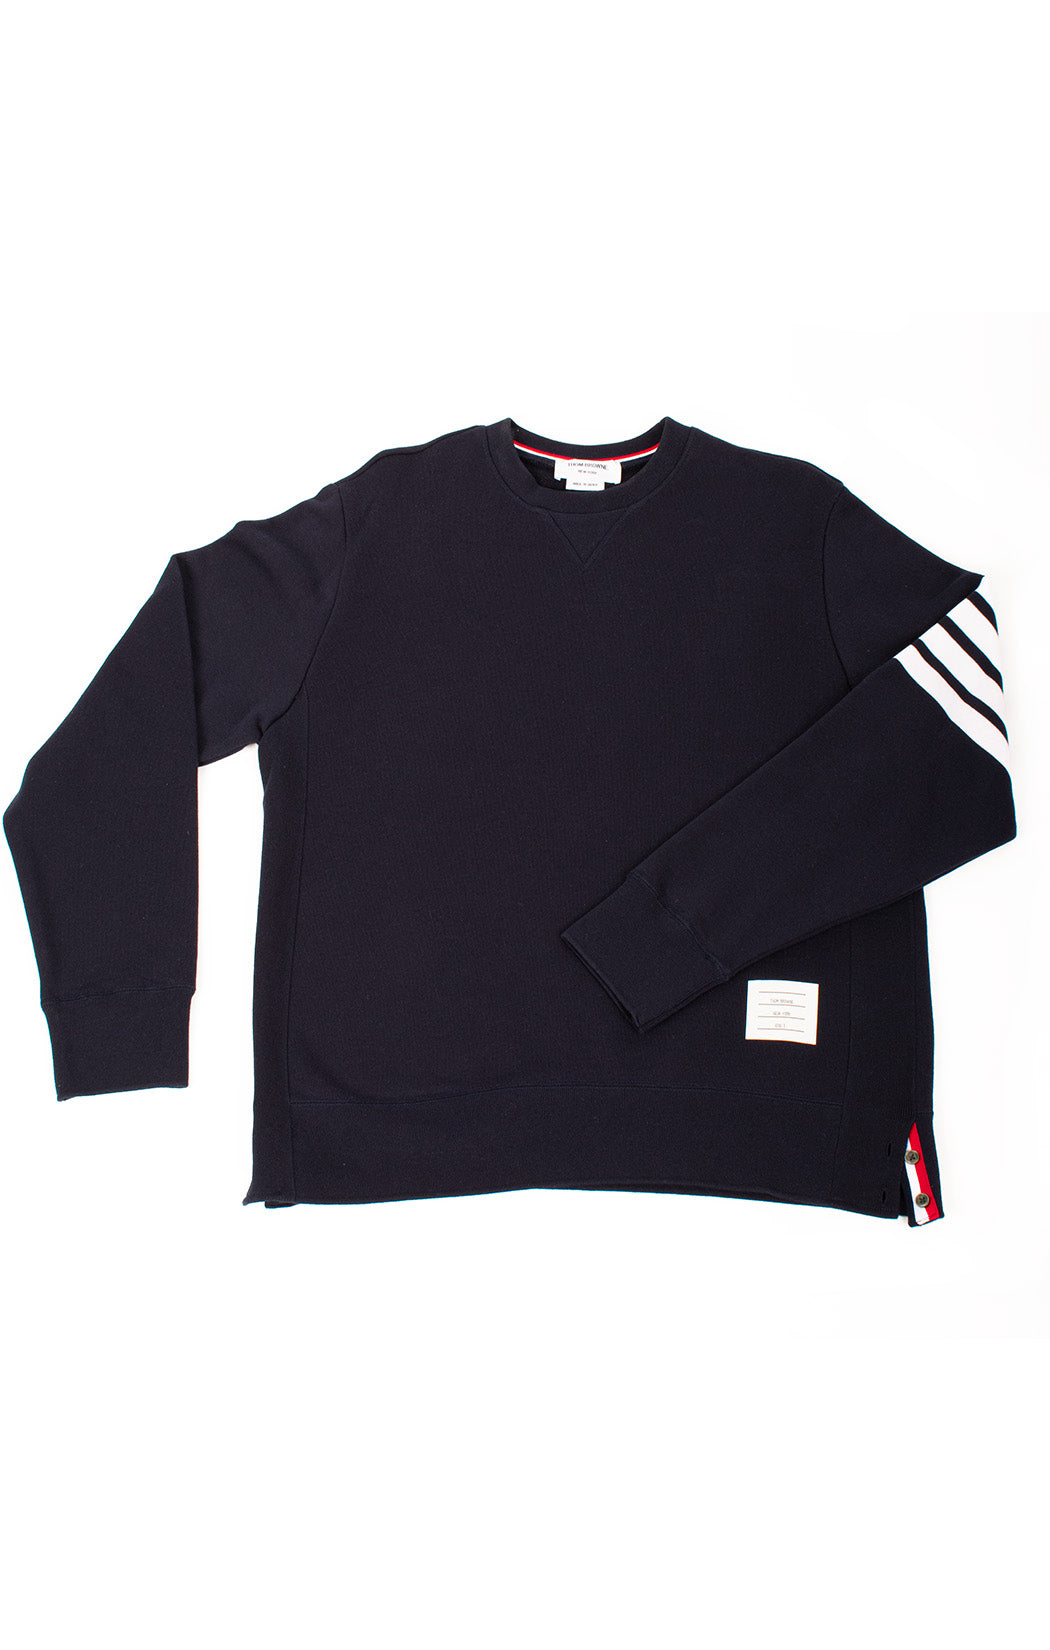 Front view of THOM BROWNE with tags Sweatshirt Size 5 (comparable to XL- XXL)